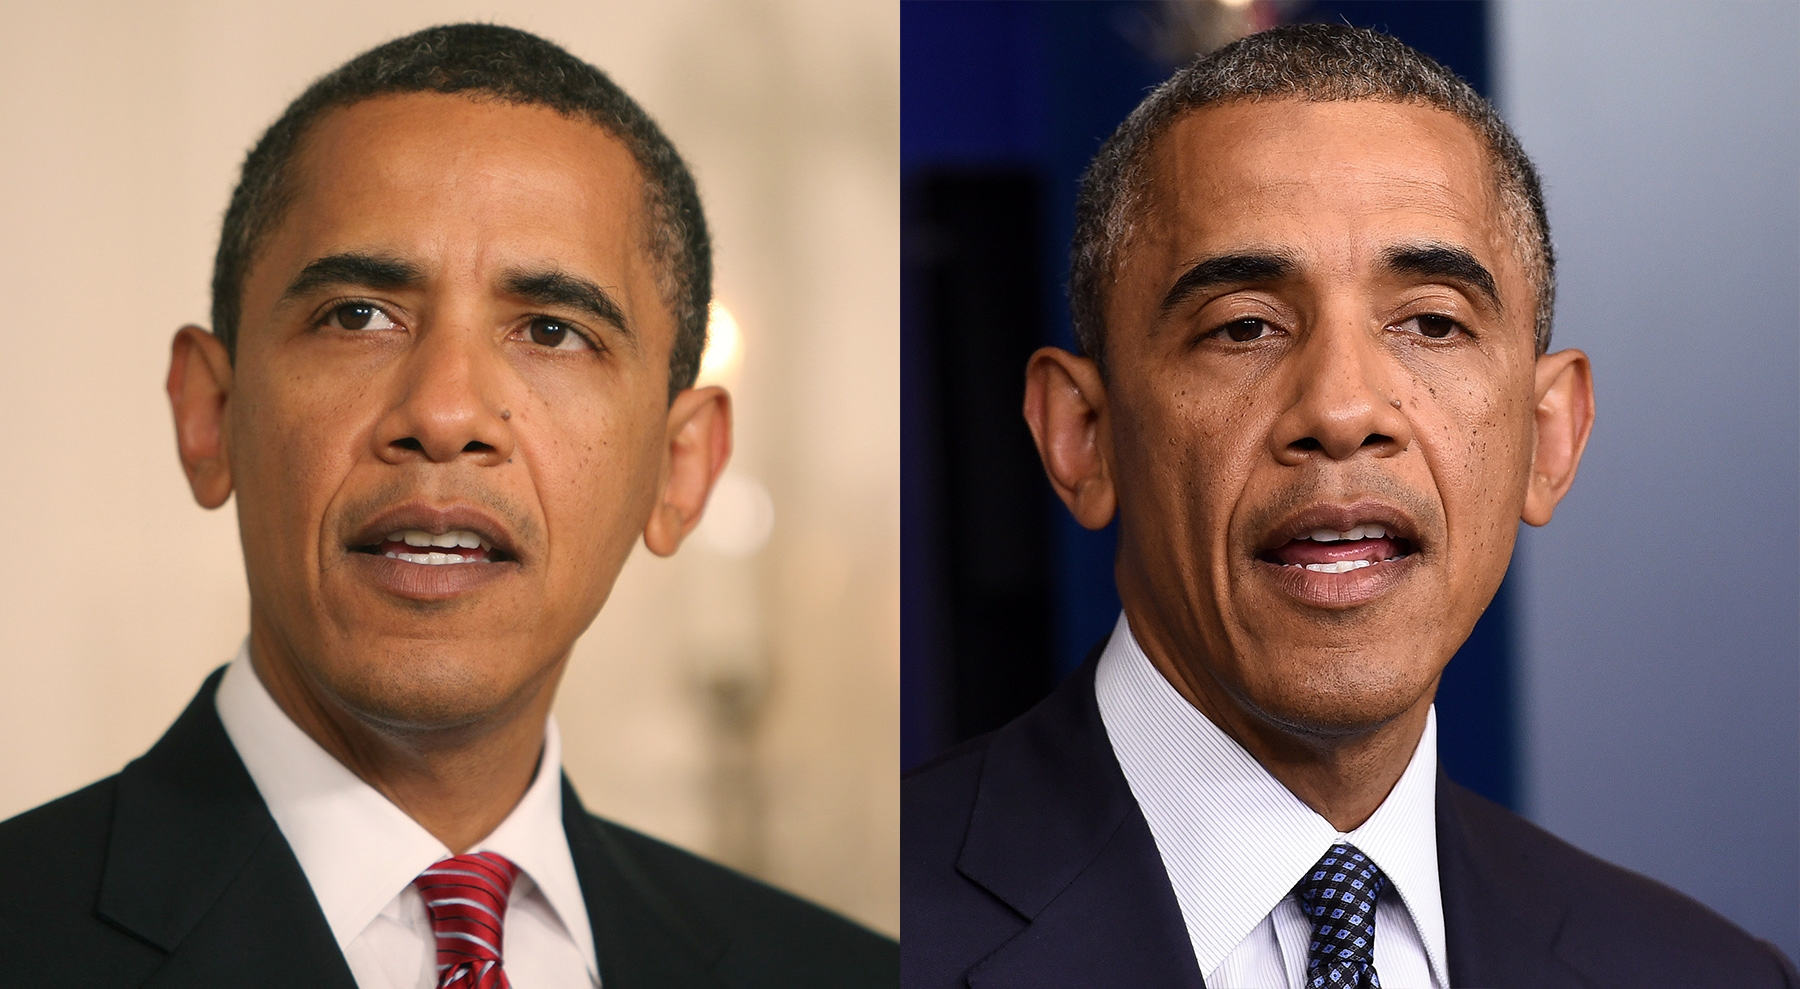 Past Presidents Before And After Their Term In Office